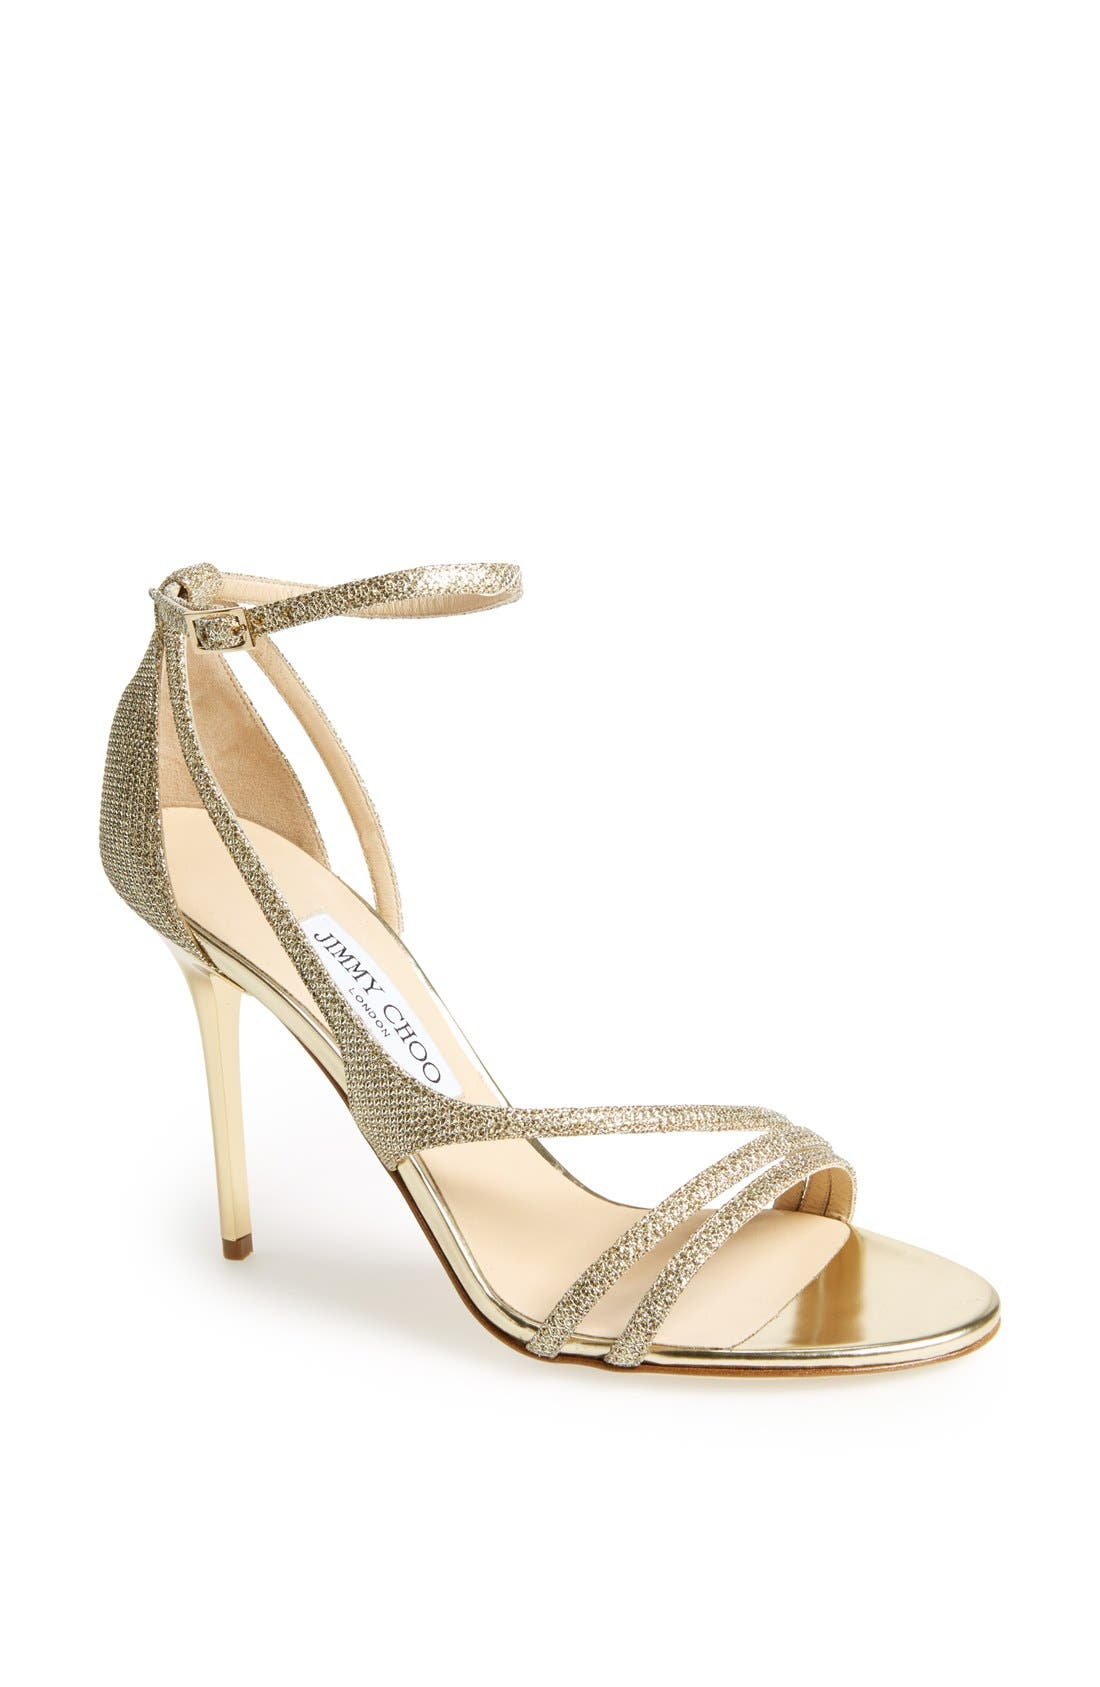 Alternate Image 1 Selected - Jimmy Choo 'Valdez' Sandal